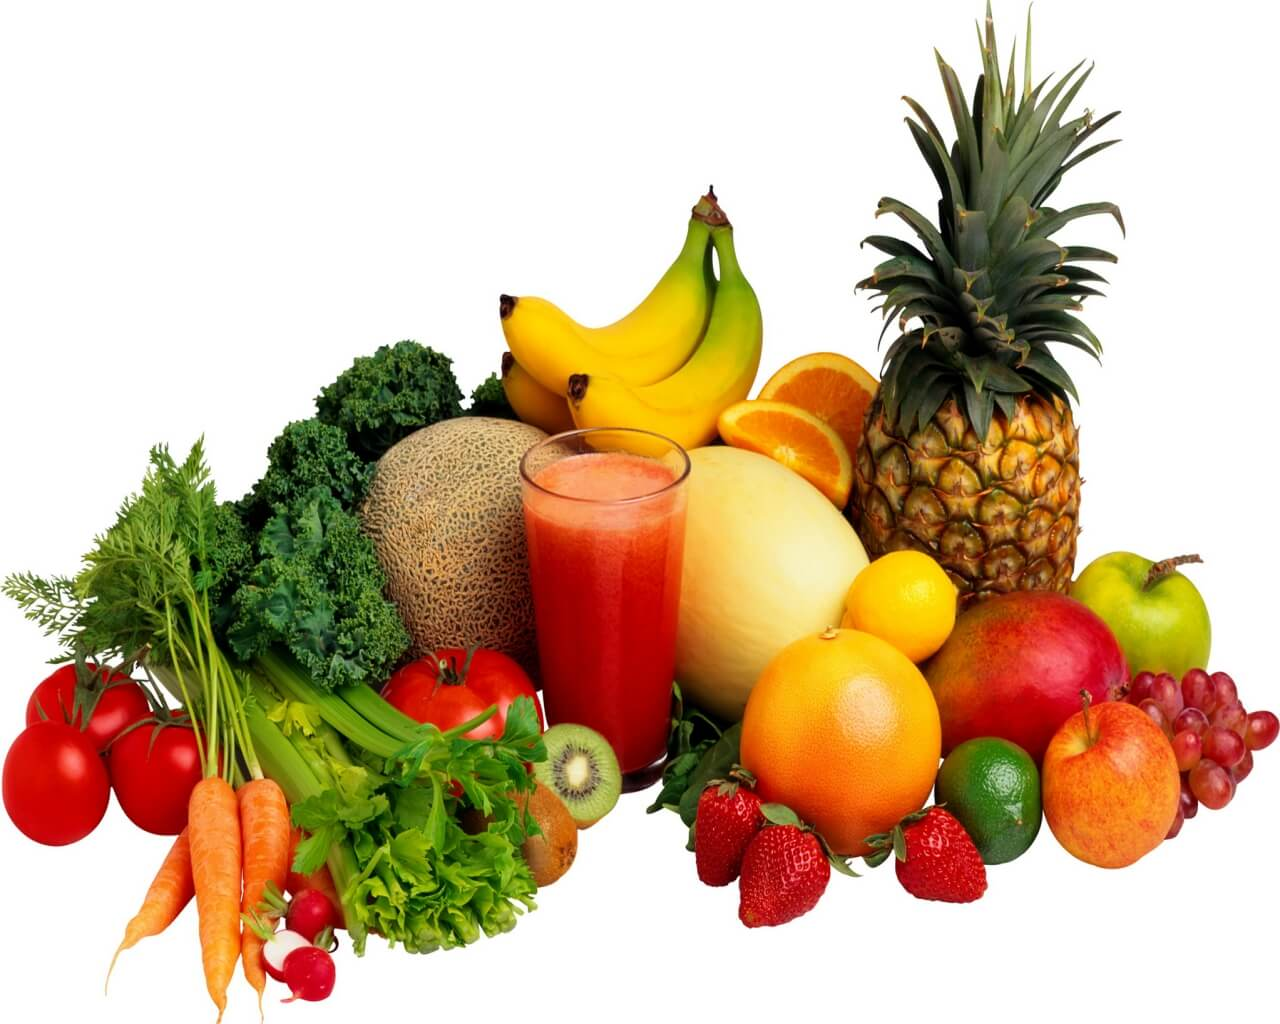 fruits1 - Eating more fruits, veggies can reduce woman's risk of dying from breast cancer